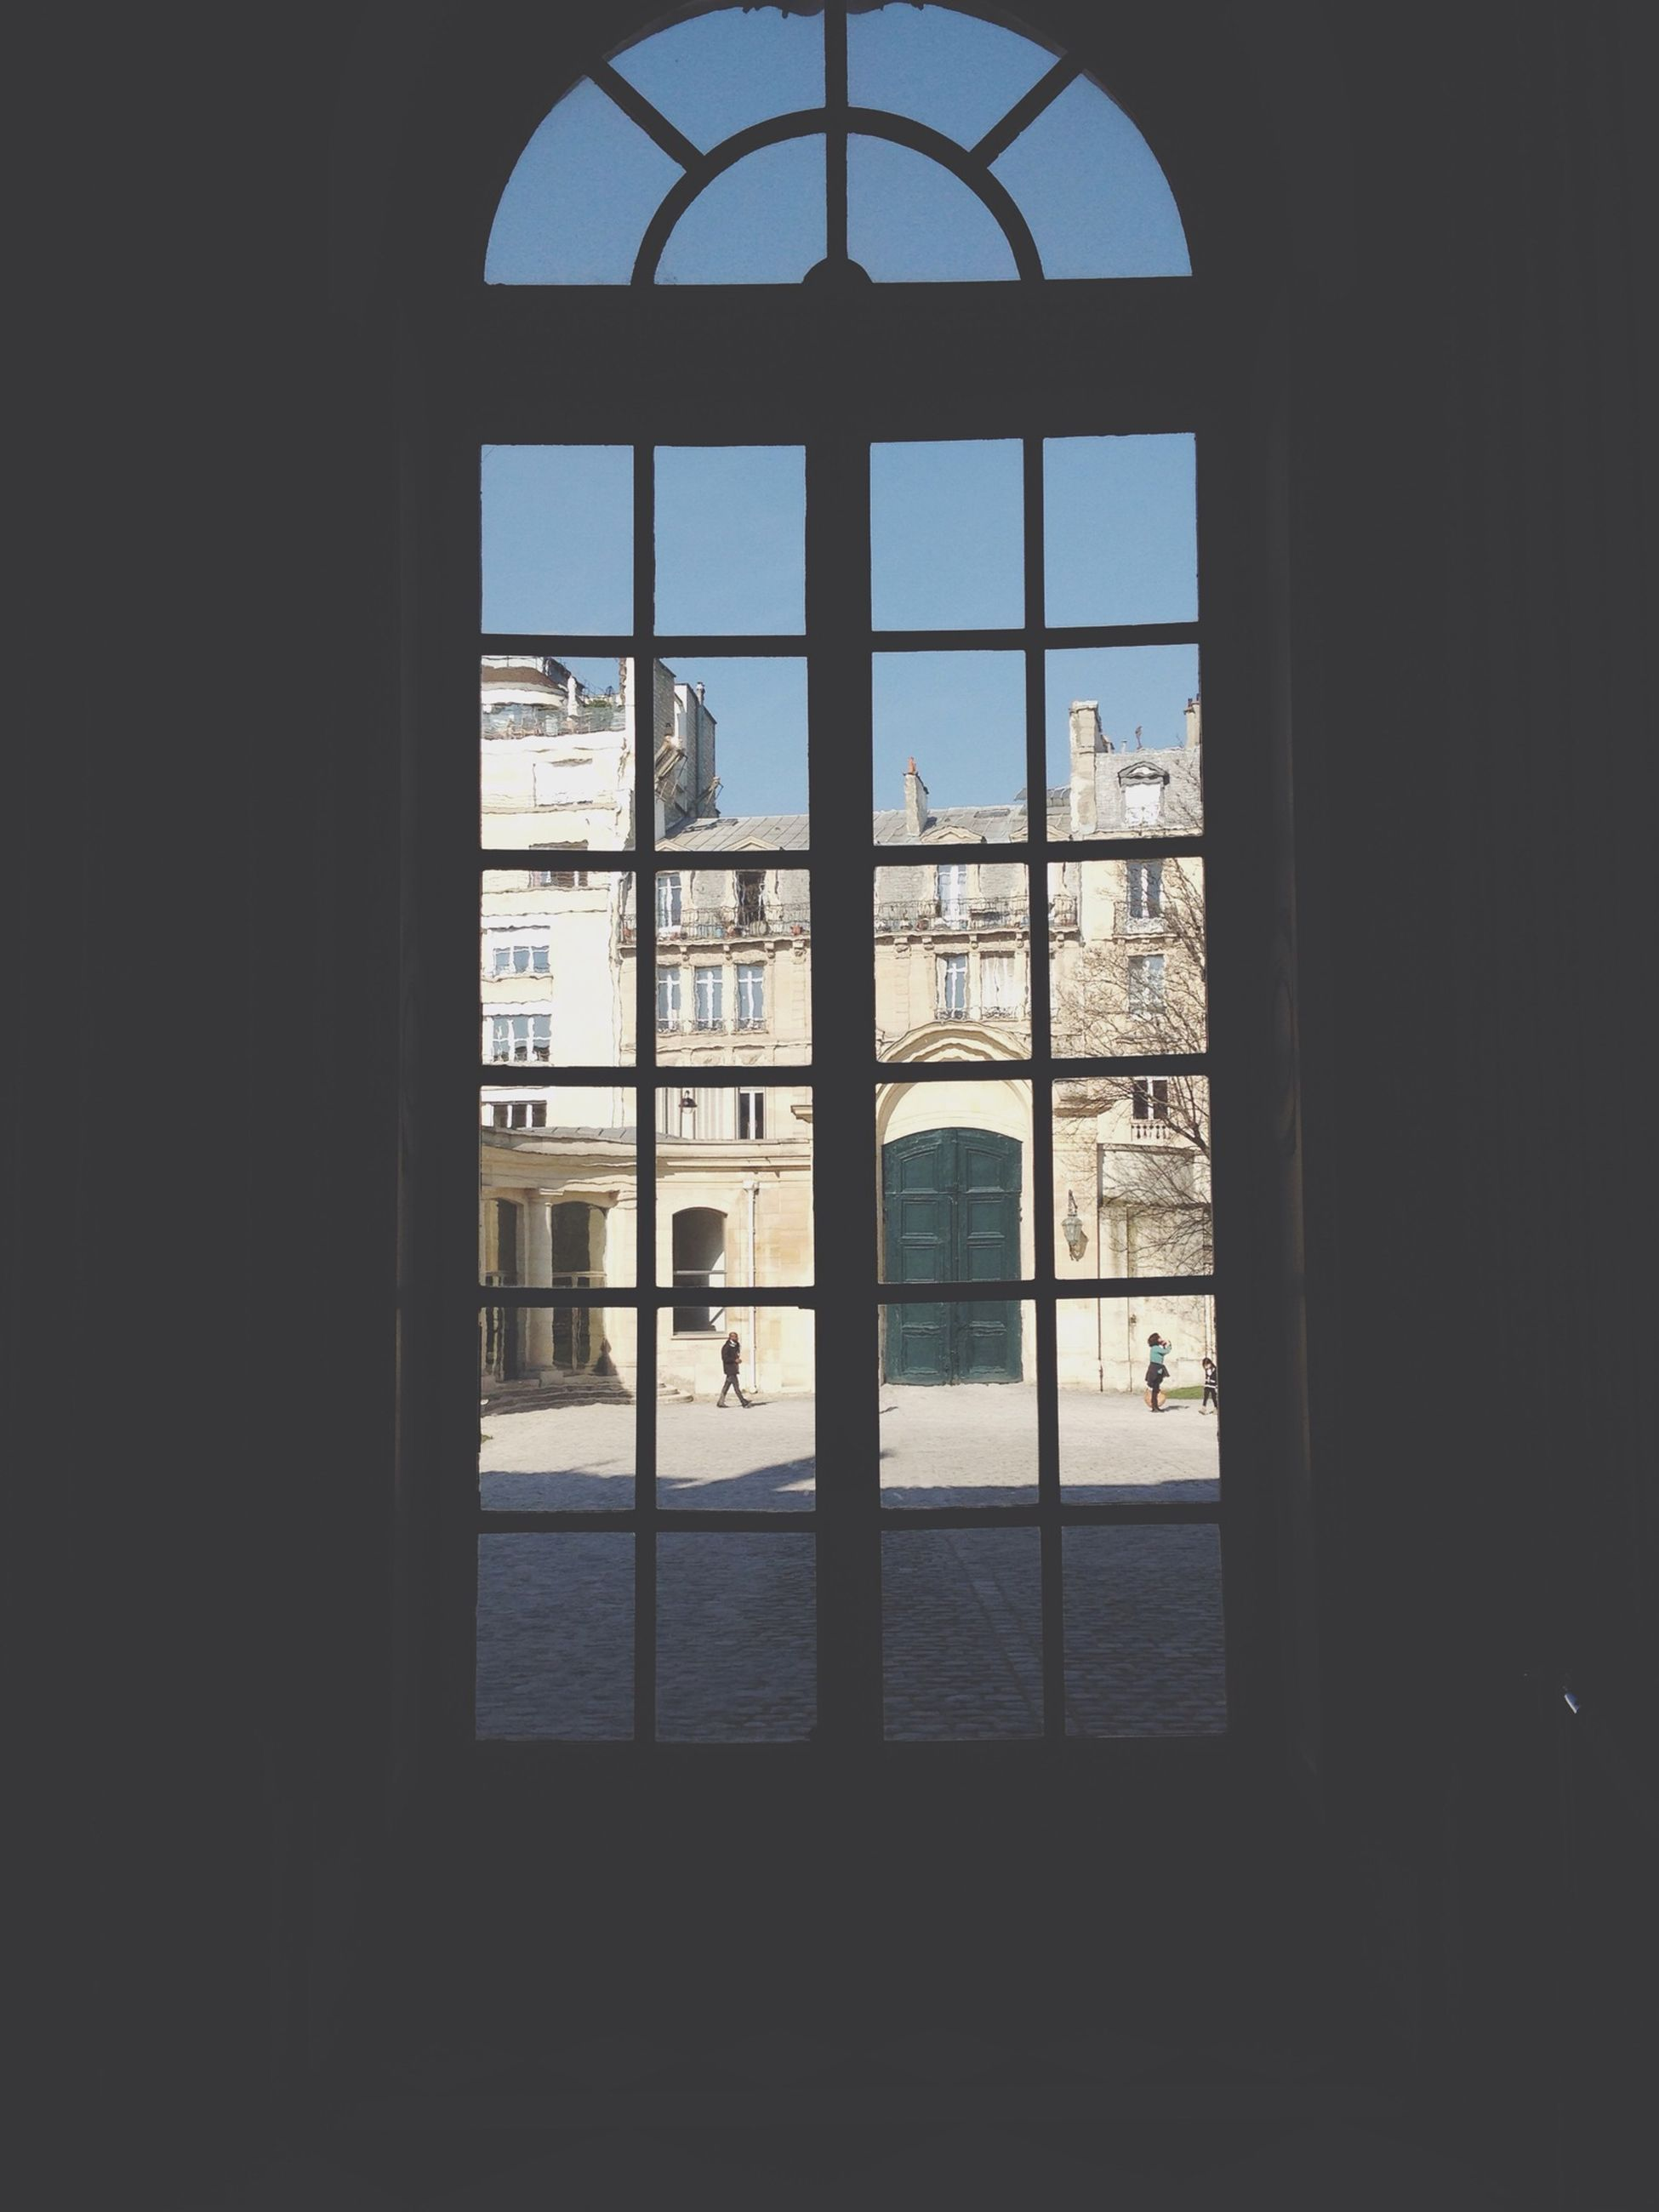 indoors, window, architecture, built structure, glass - material, building exterior, transparent, arch, city, building, day, sunlight, interior, dark, sky, clear sky, reflection, entrance, silhouette, door